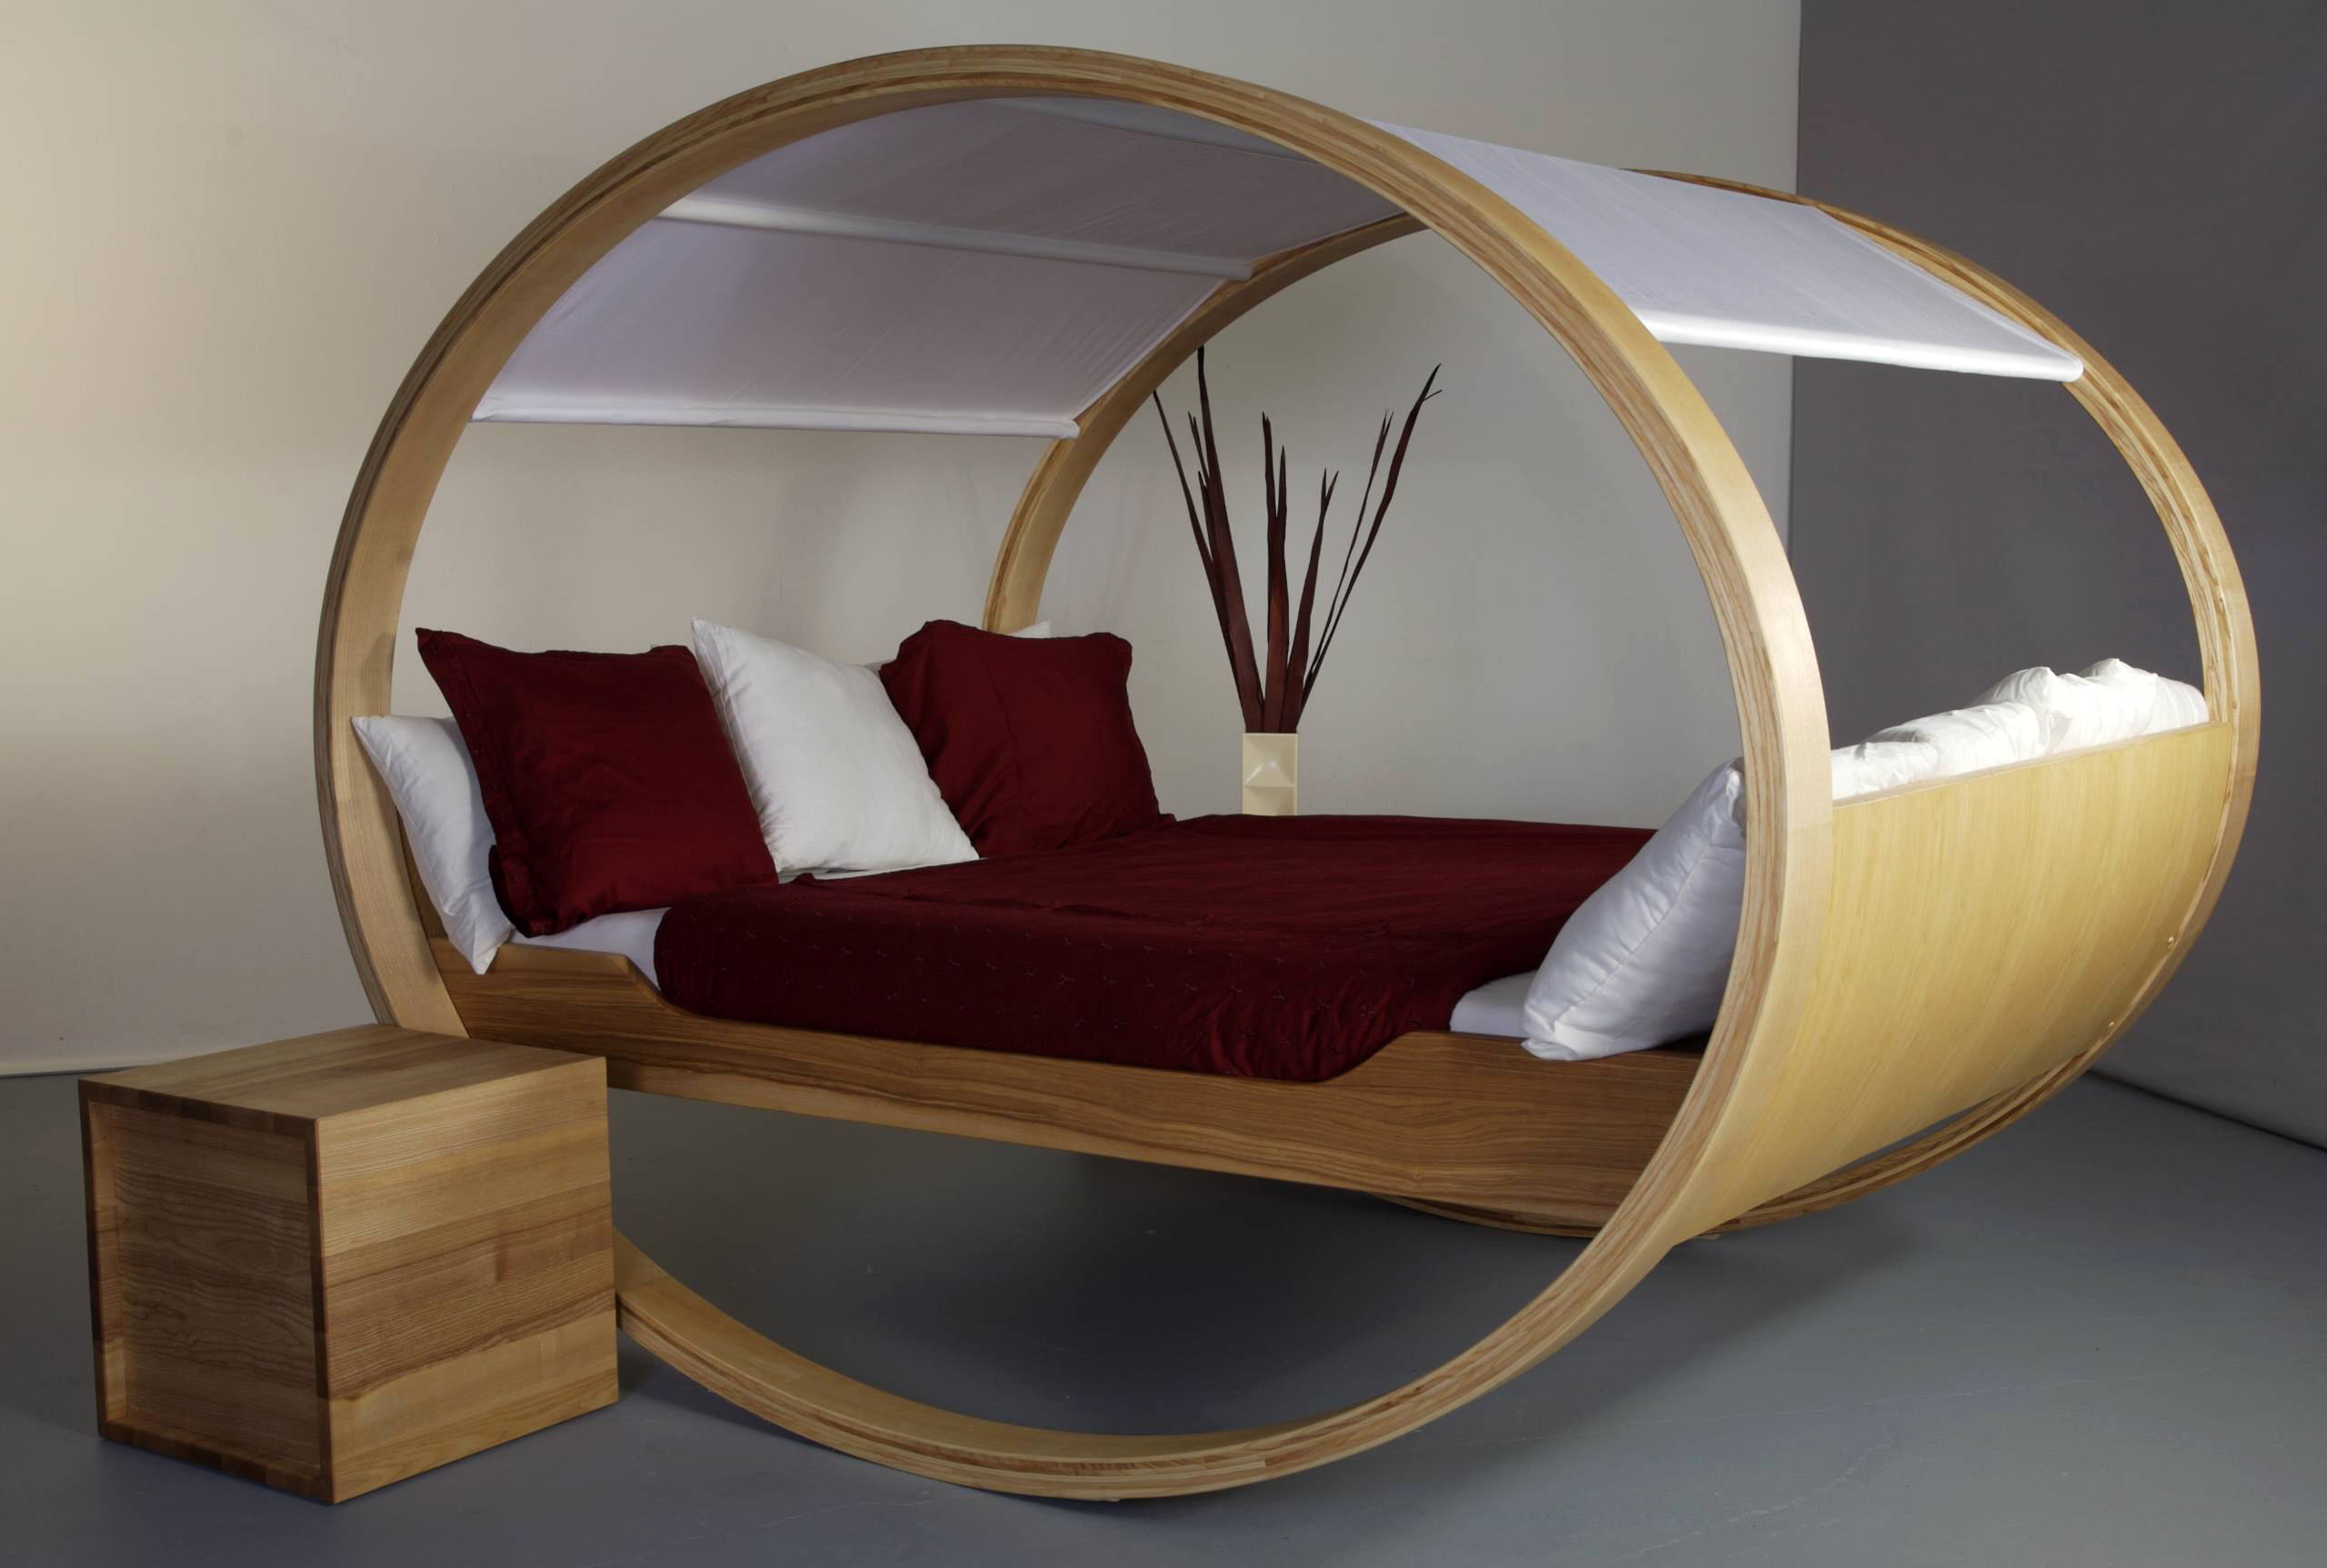 Rocking Bed By Manuel Kloker At Coroflot Com Interiors Inside Ideas Interiors design about Everything [magnanprojects.com]